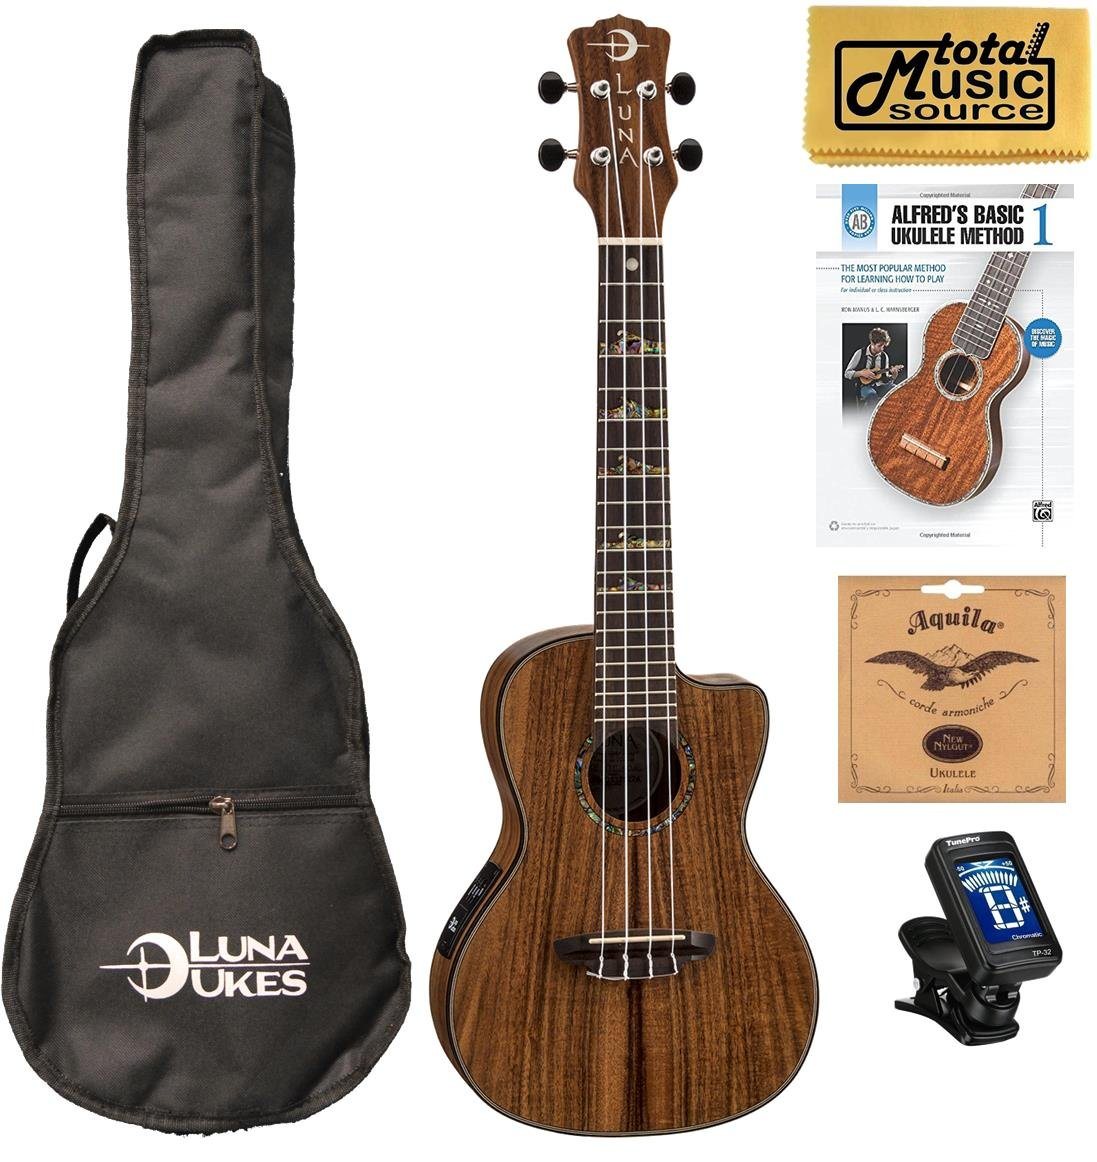 Luna High Tide Series Koa Concert Ukulele w/Gigbag,Tuner,Strings,Book & PC